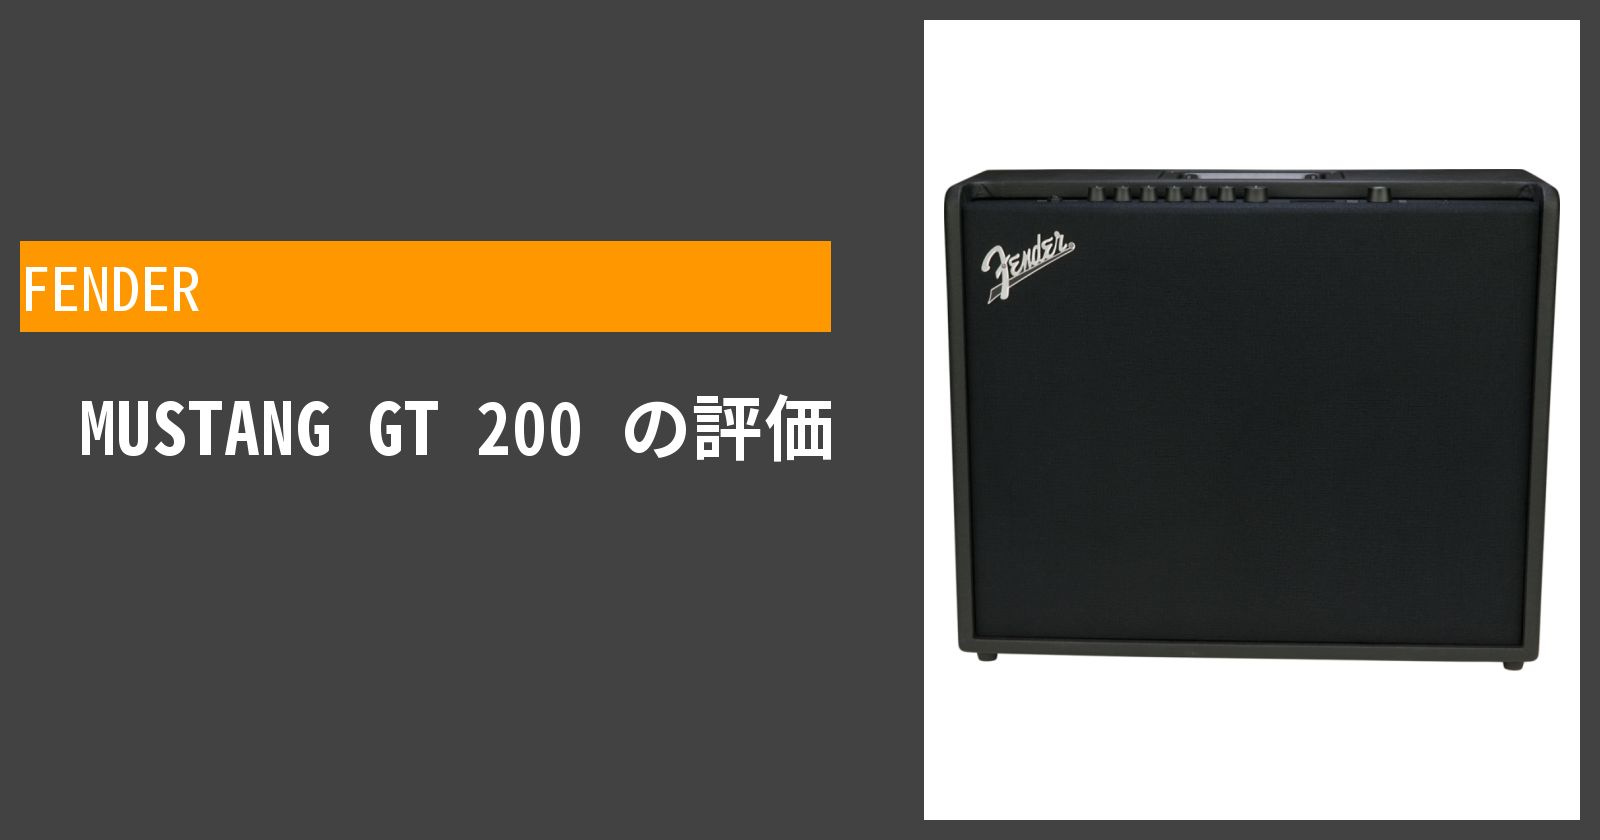 MUSTANG GT 200を徹底評価